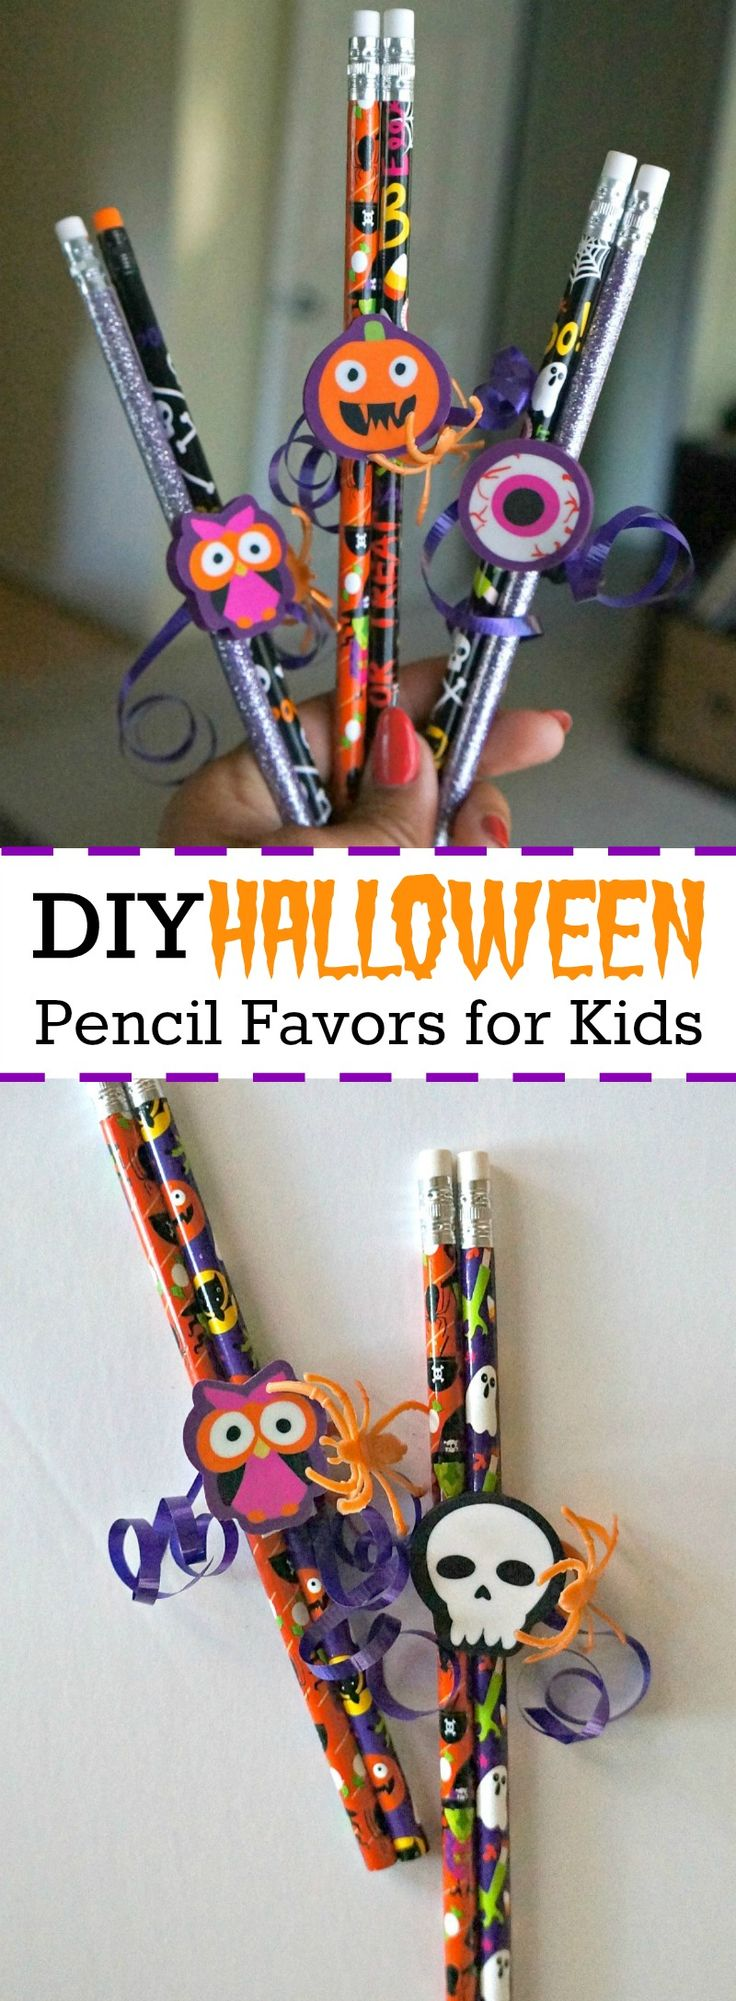 DIY Halloween Pencil Party Favors for Kids - No Candy!